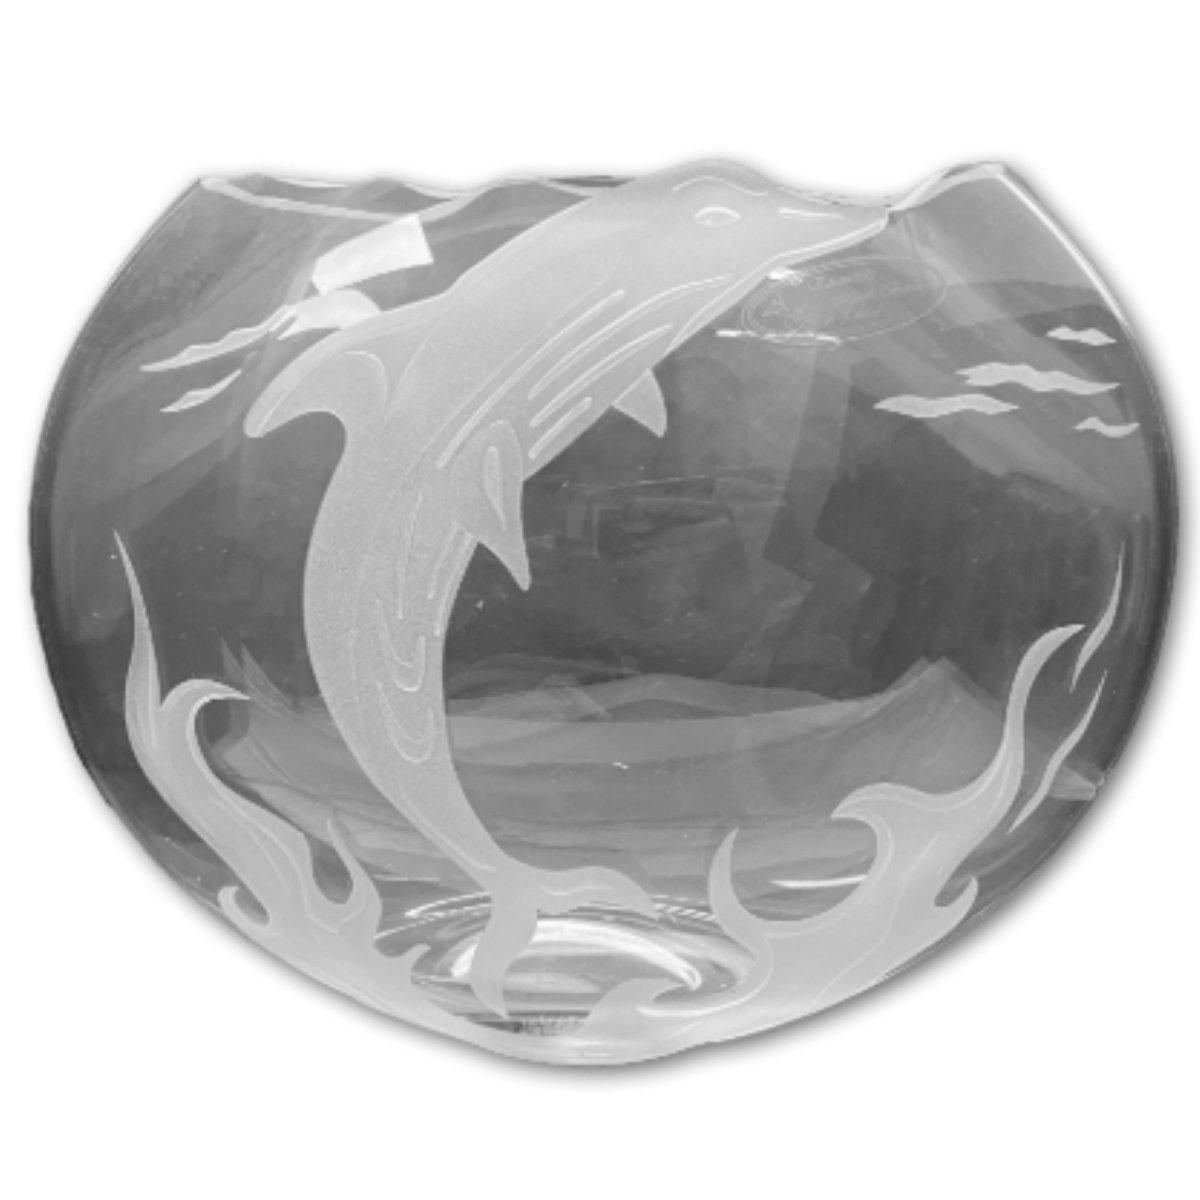 Premium Under the Sea Etched Vase - Shalimar Flower Shop